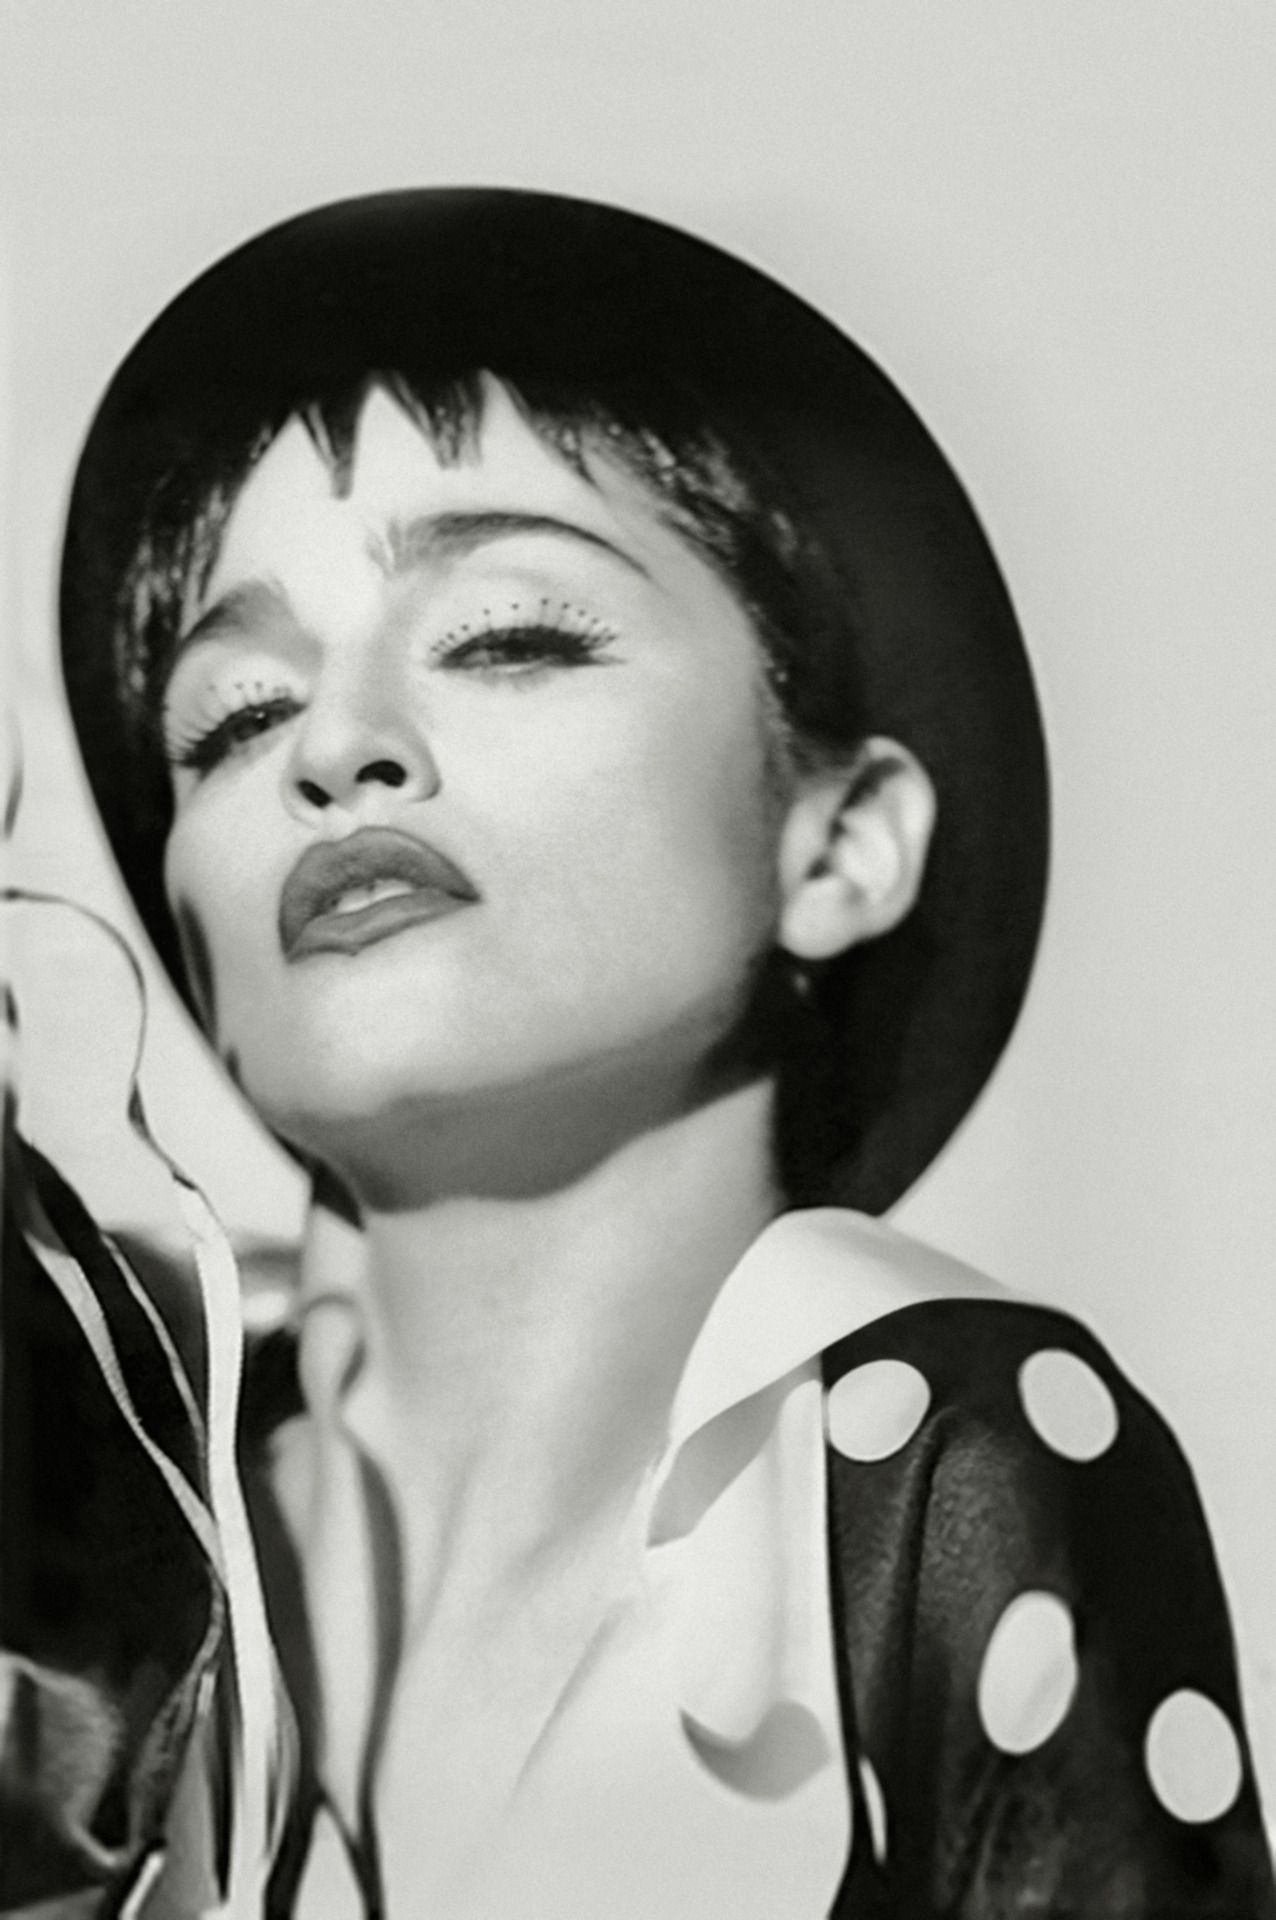 madonna herb ritts �the immaculate collectionquot 1990